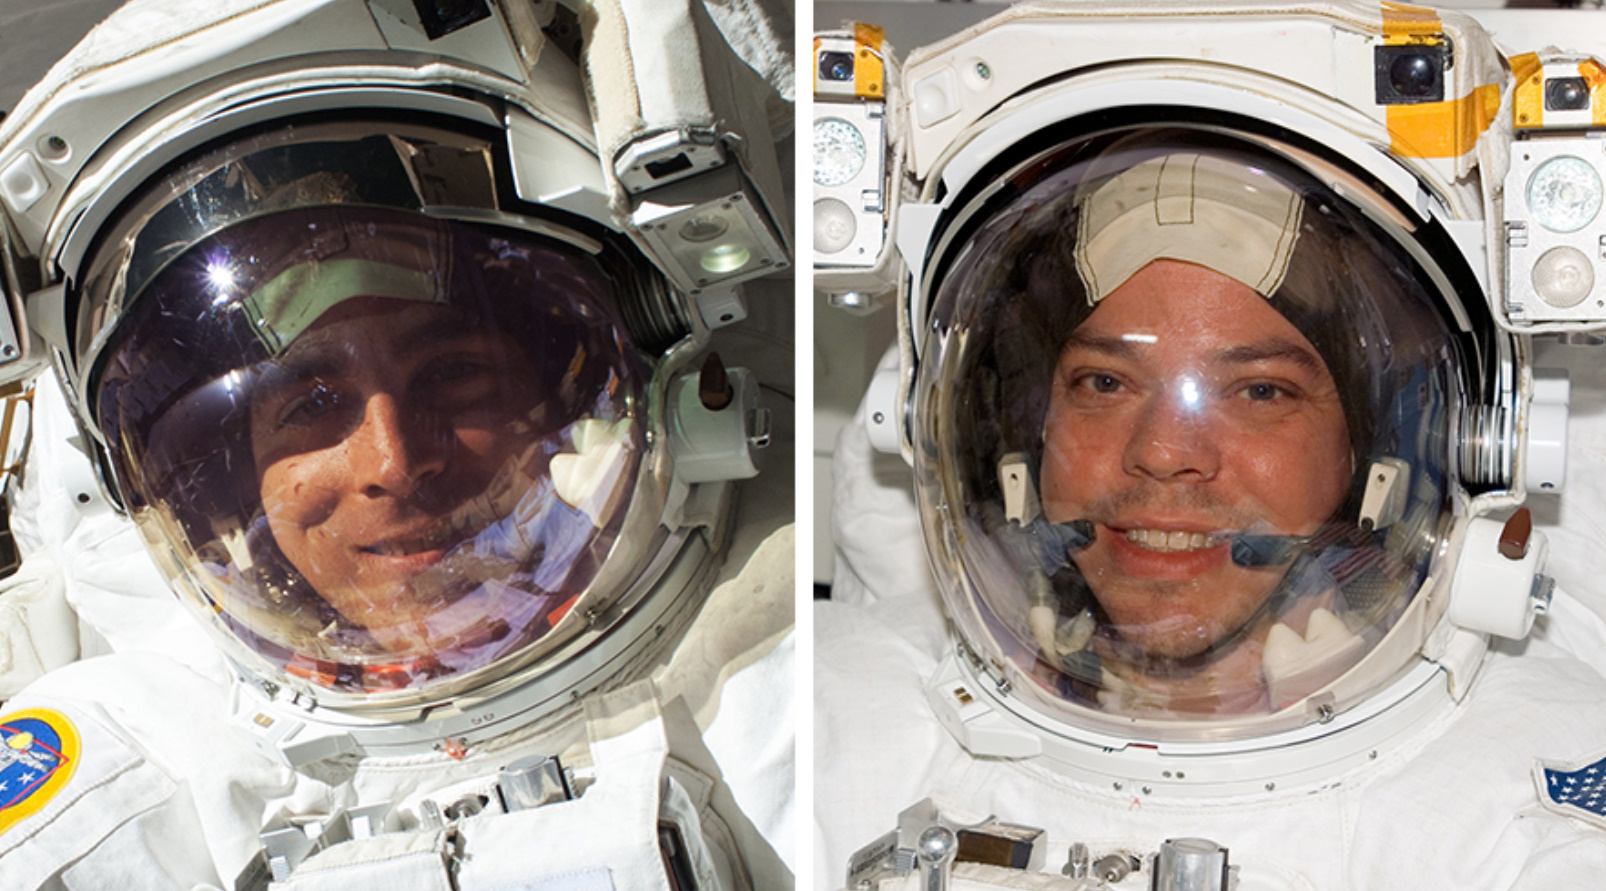 Astronaut admits to losing mirror while on spacewalk